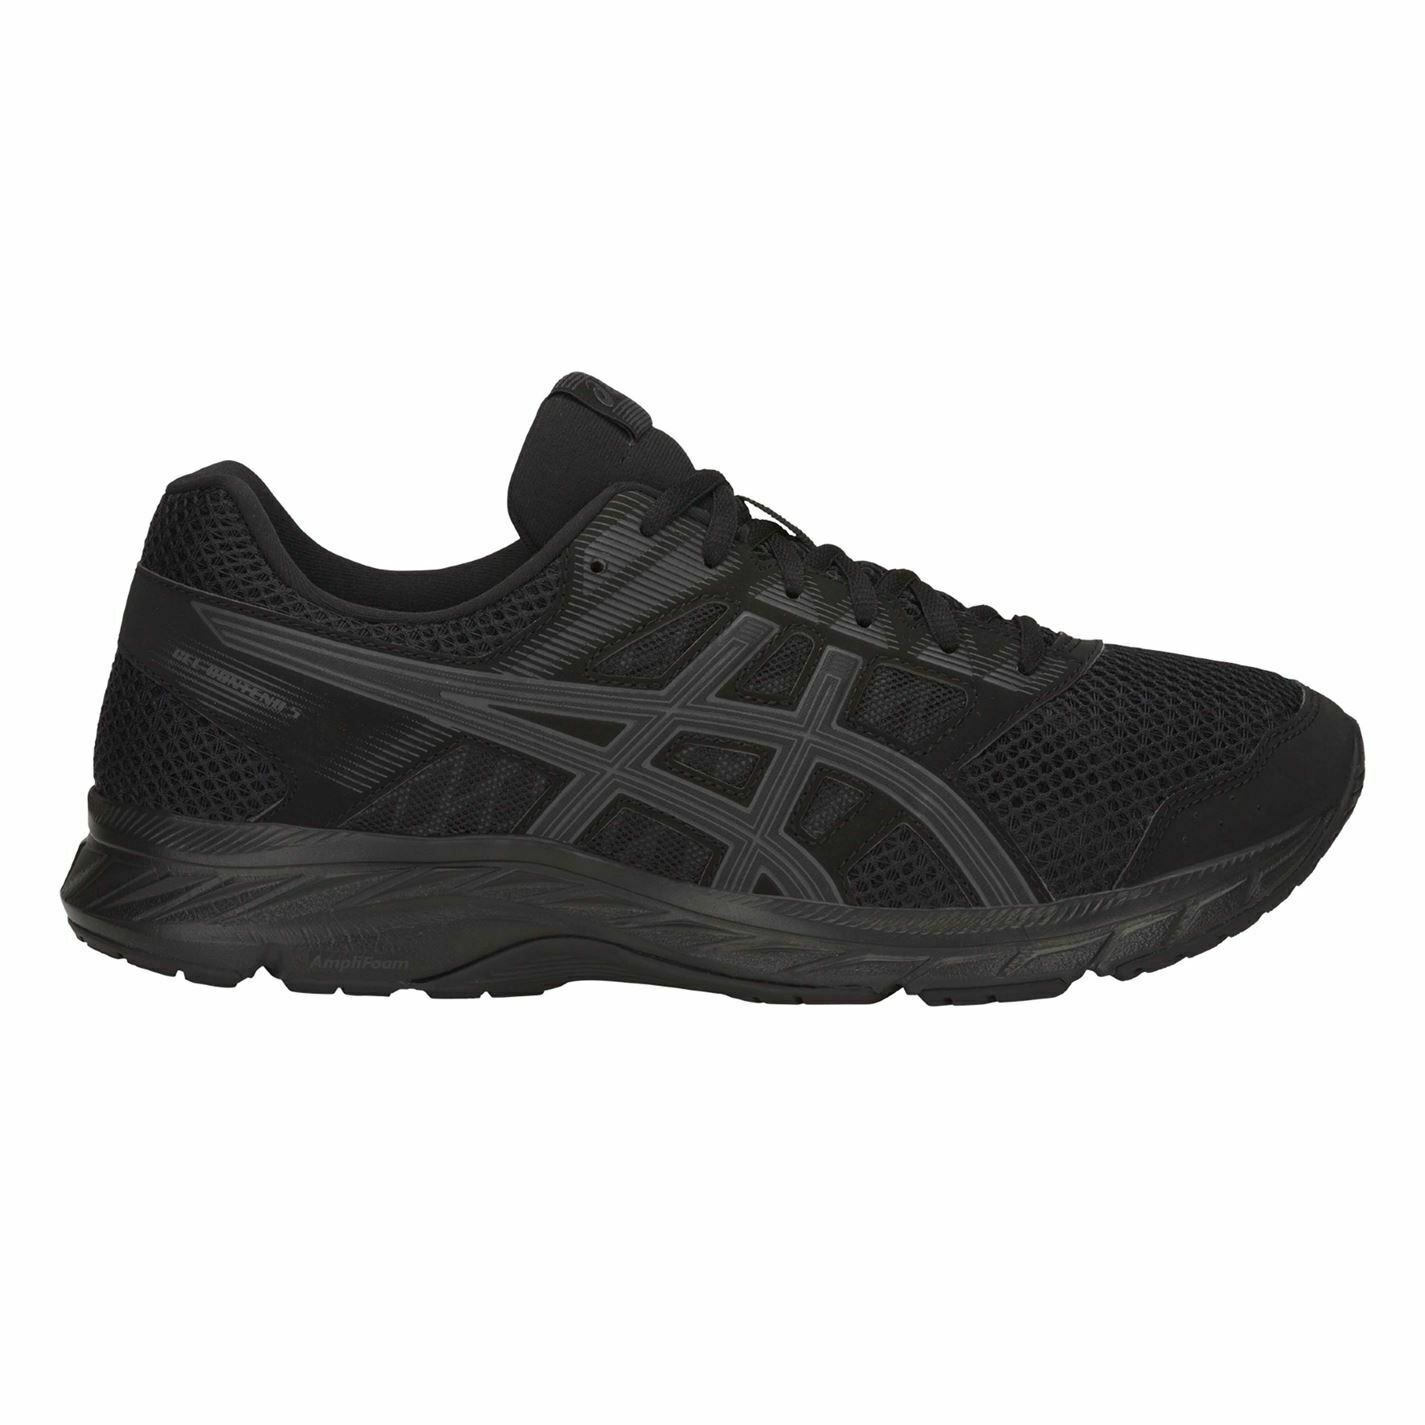 Asics Mens Gel Contend 5 Trainers  Sneakers Sports shoes Athletic Footwear  buy cheap